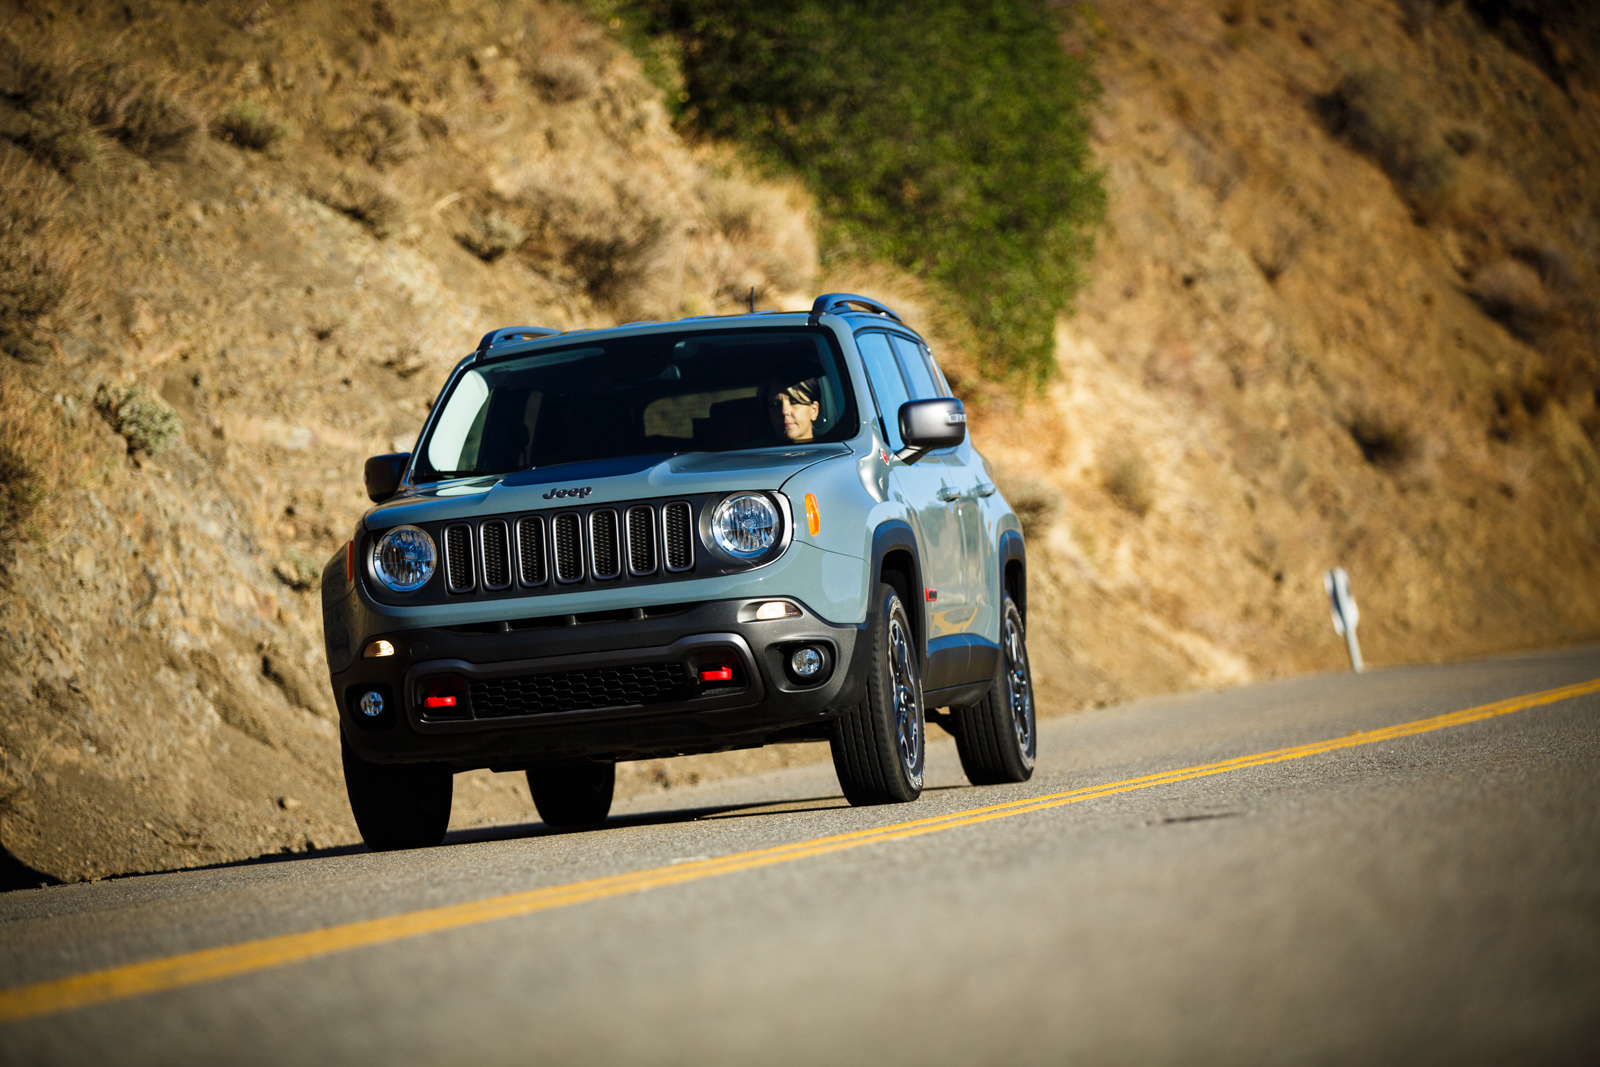 Least Reliable: Jeep Renegade